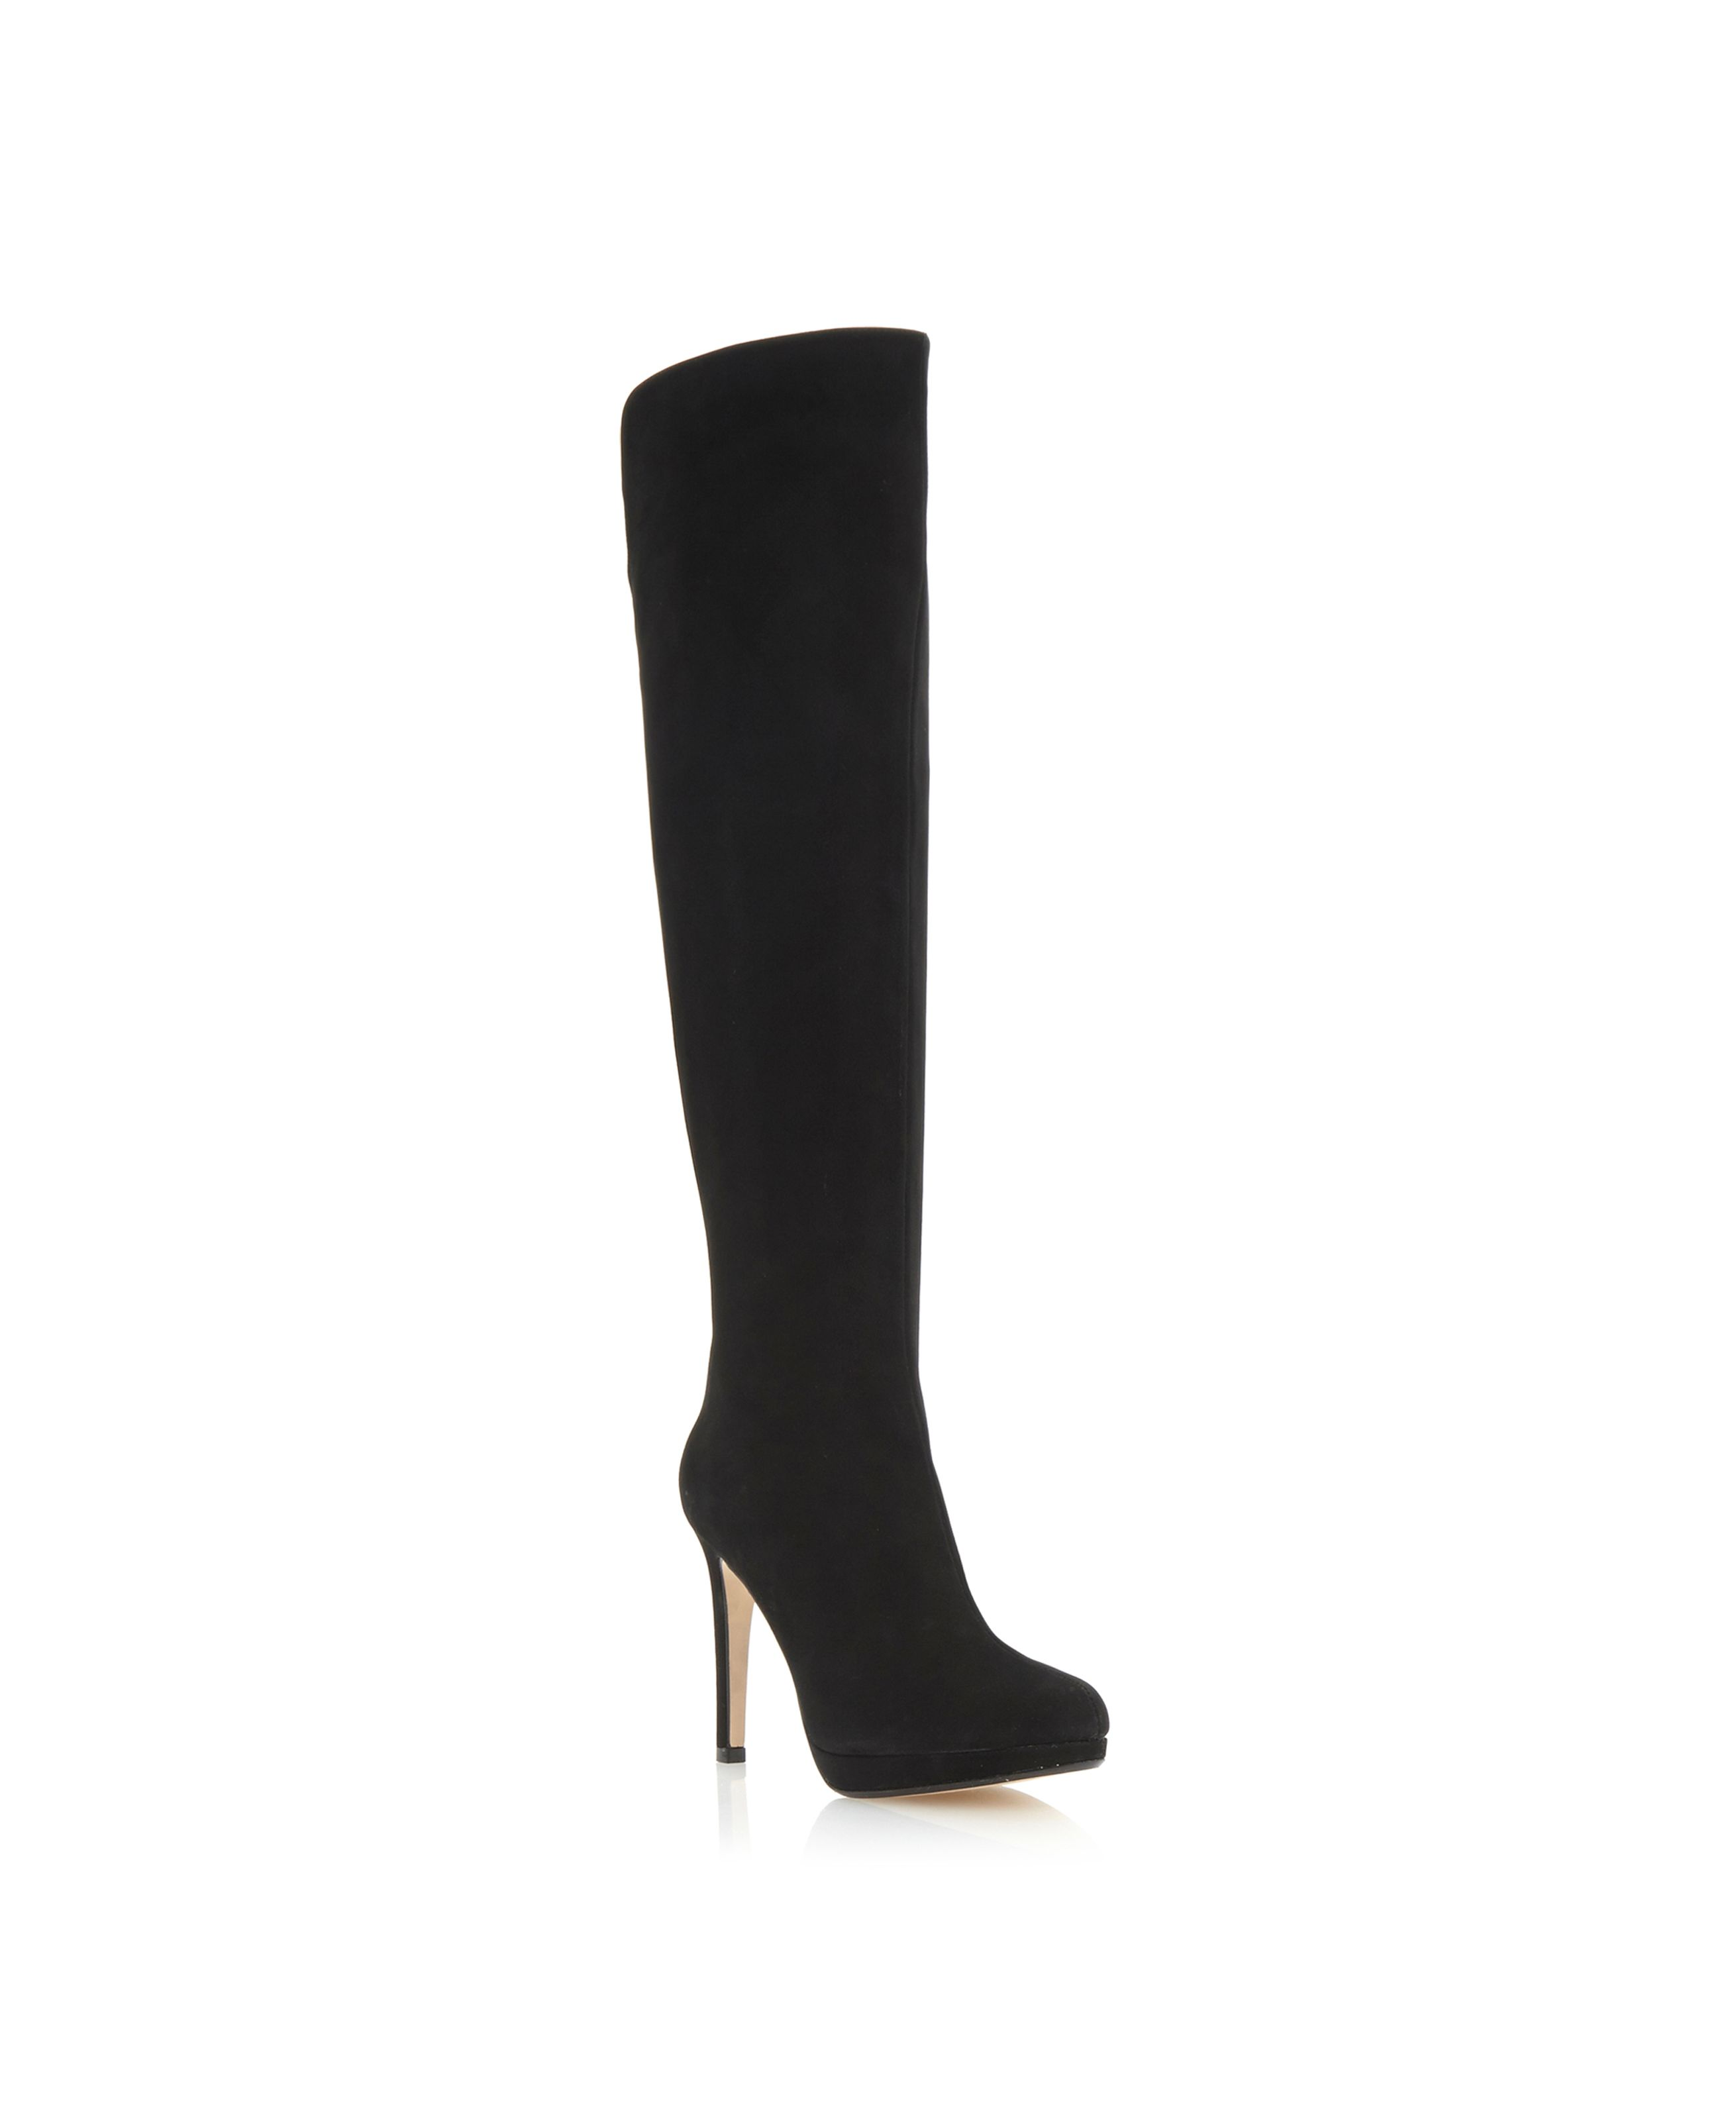 Scissors slim platform back zip high boots